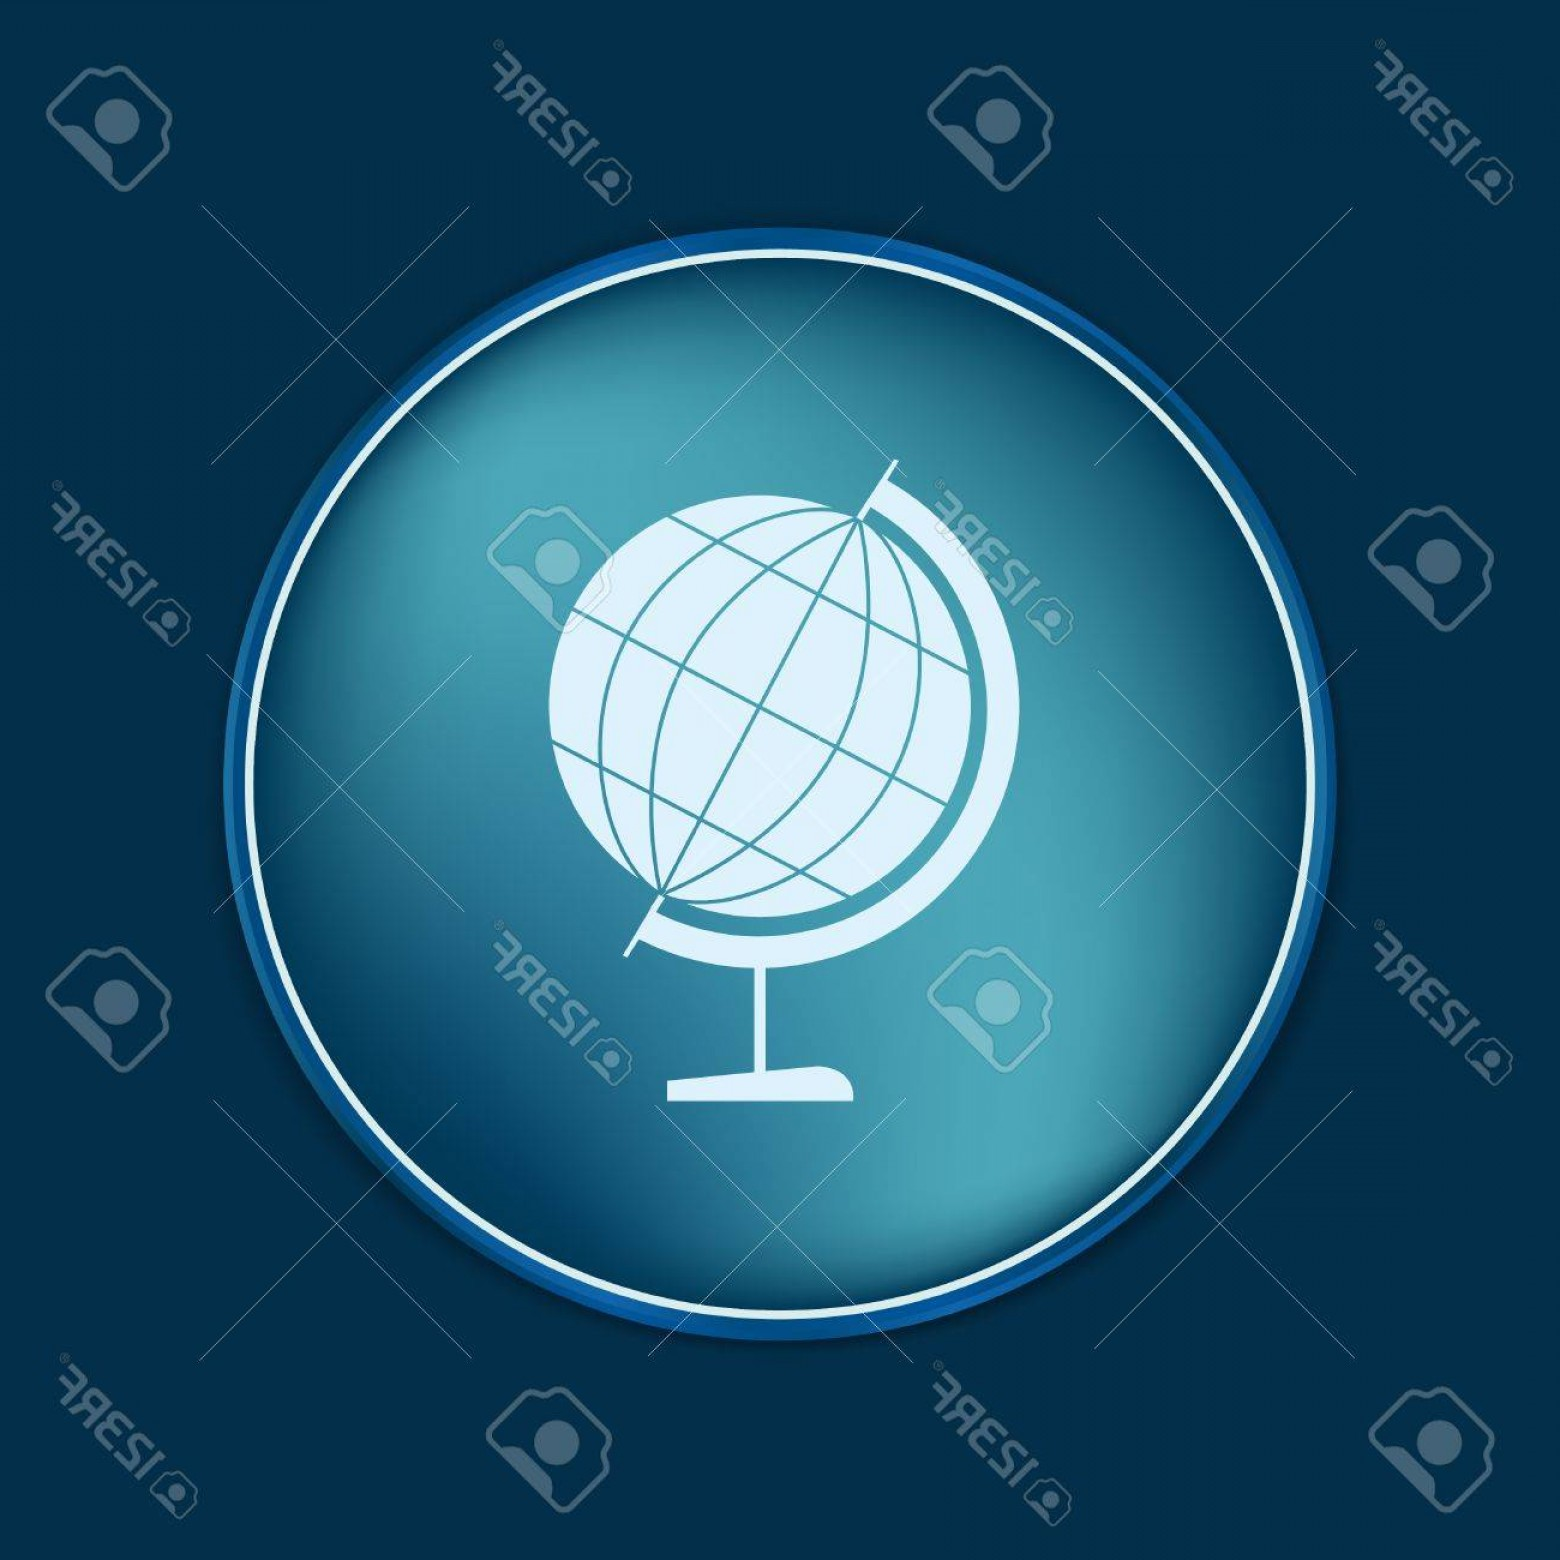 Vector Globe Countries: Photostock Vector Globe Symbol Of Geography Symbol Icon Geography The Study Of The World And The Countries On The Plan